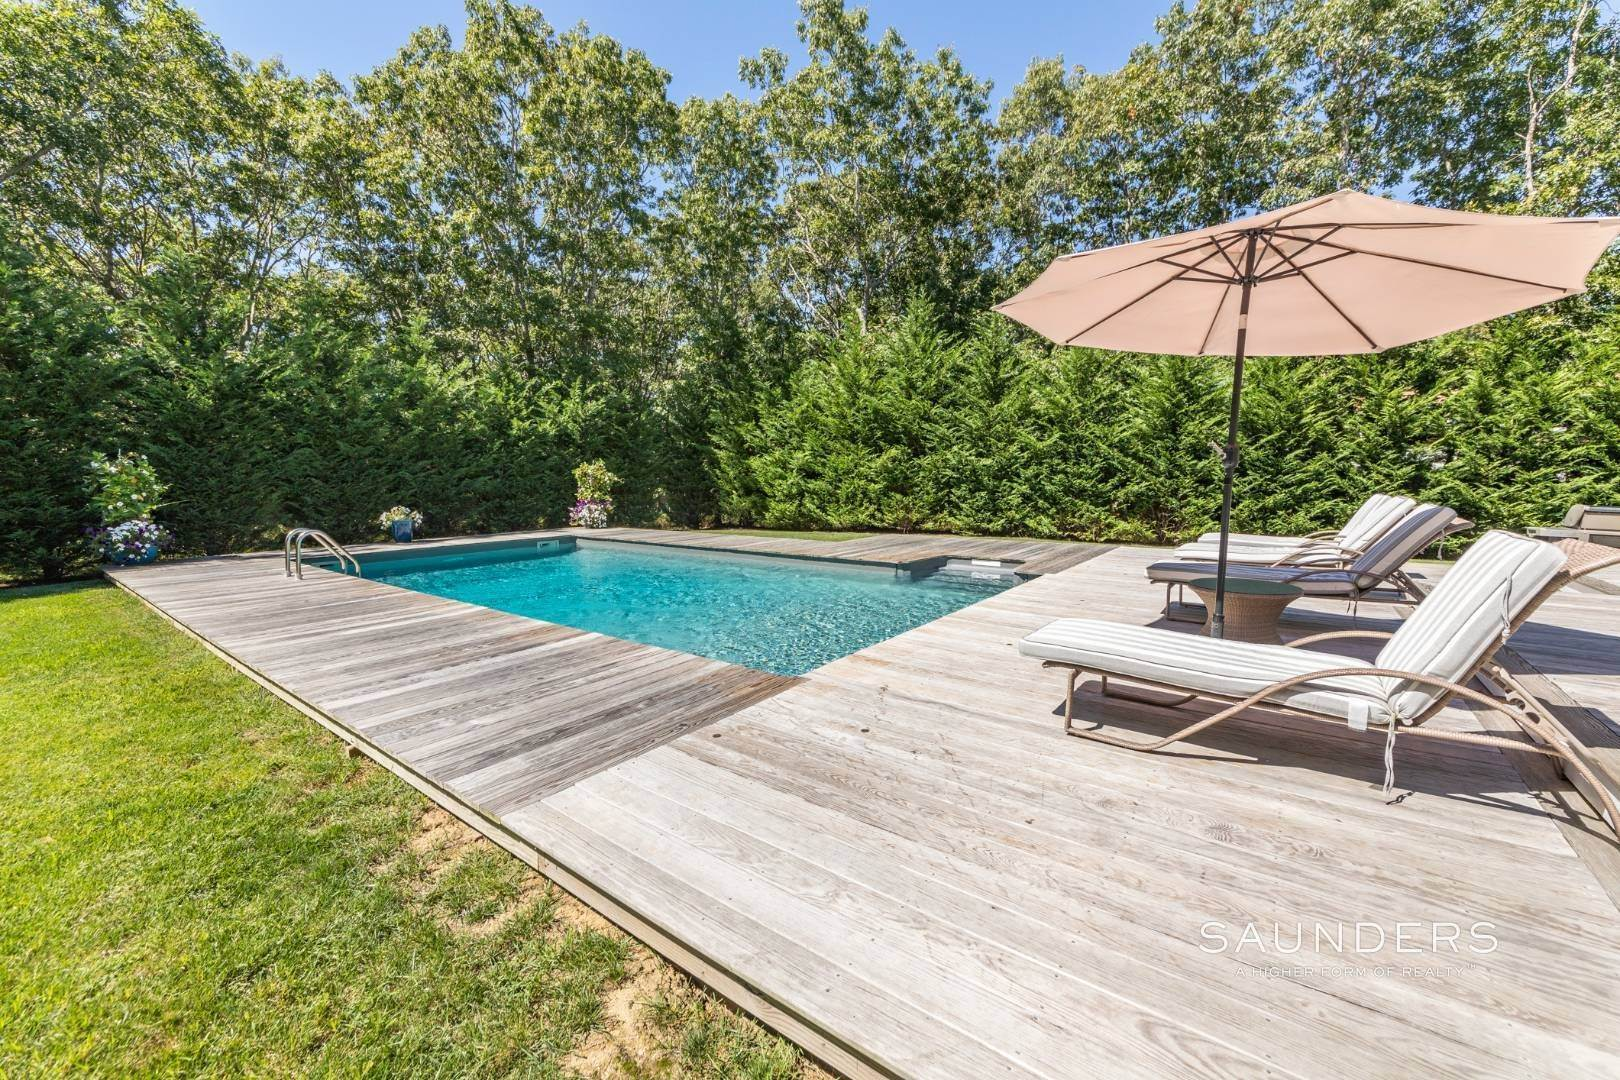 4. Single Family Homes for Sale at Pristine Traditional Home With Modern Amenities 11 Birdie Lane, East Hampton, East Hampton Town, NY 11937